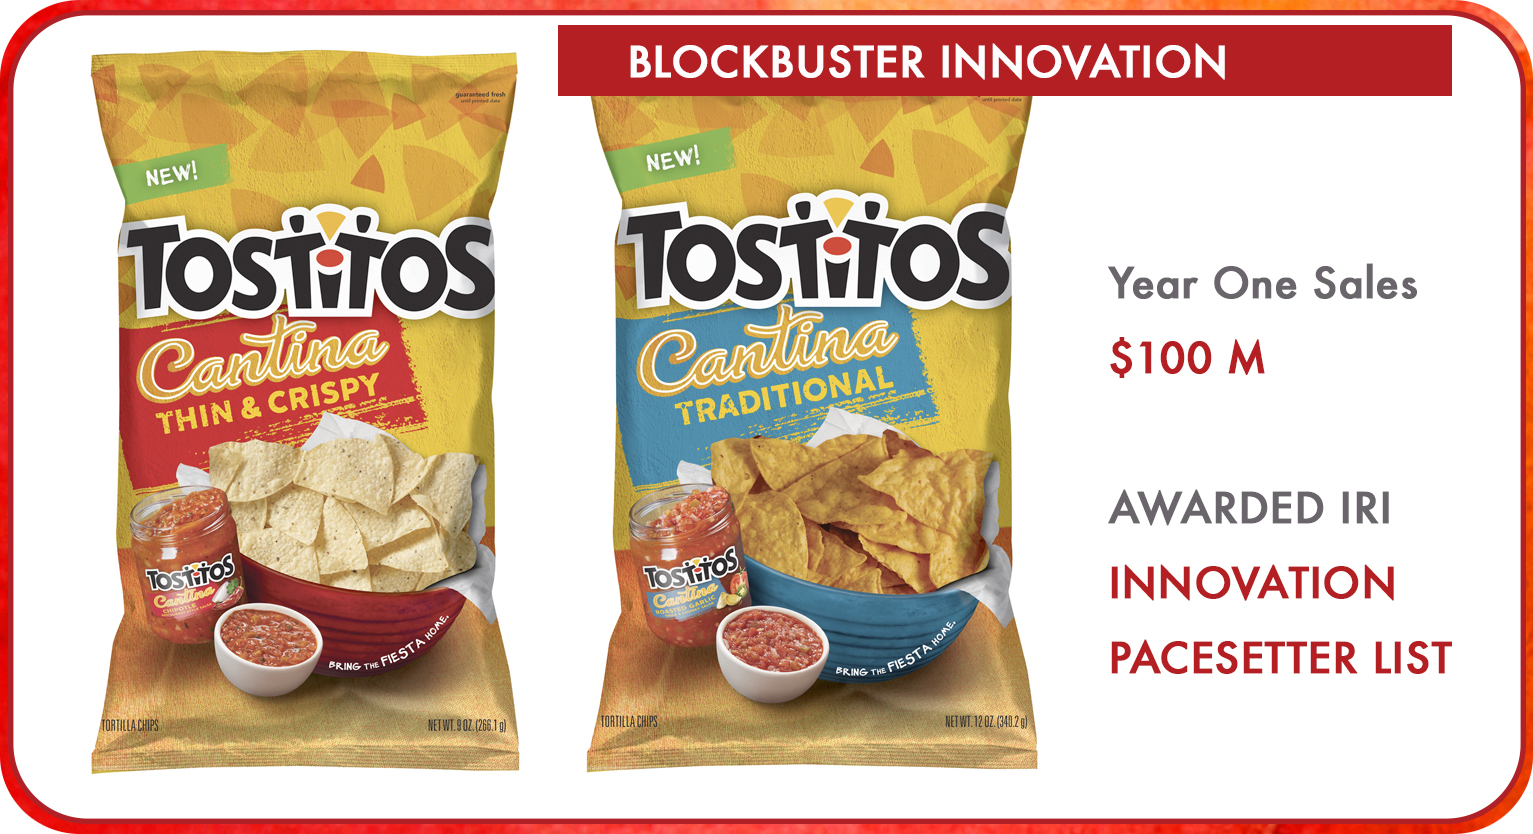 tostitos1.jpg